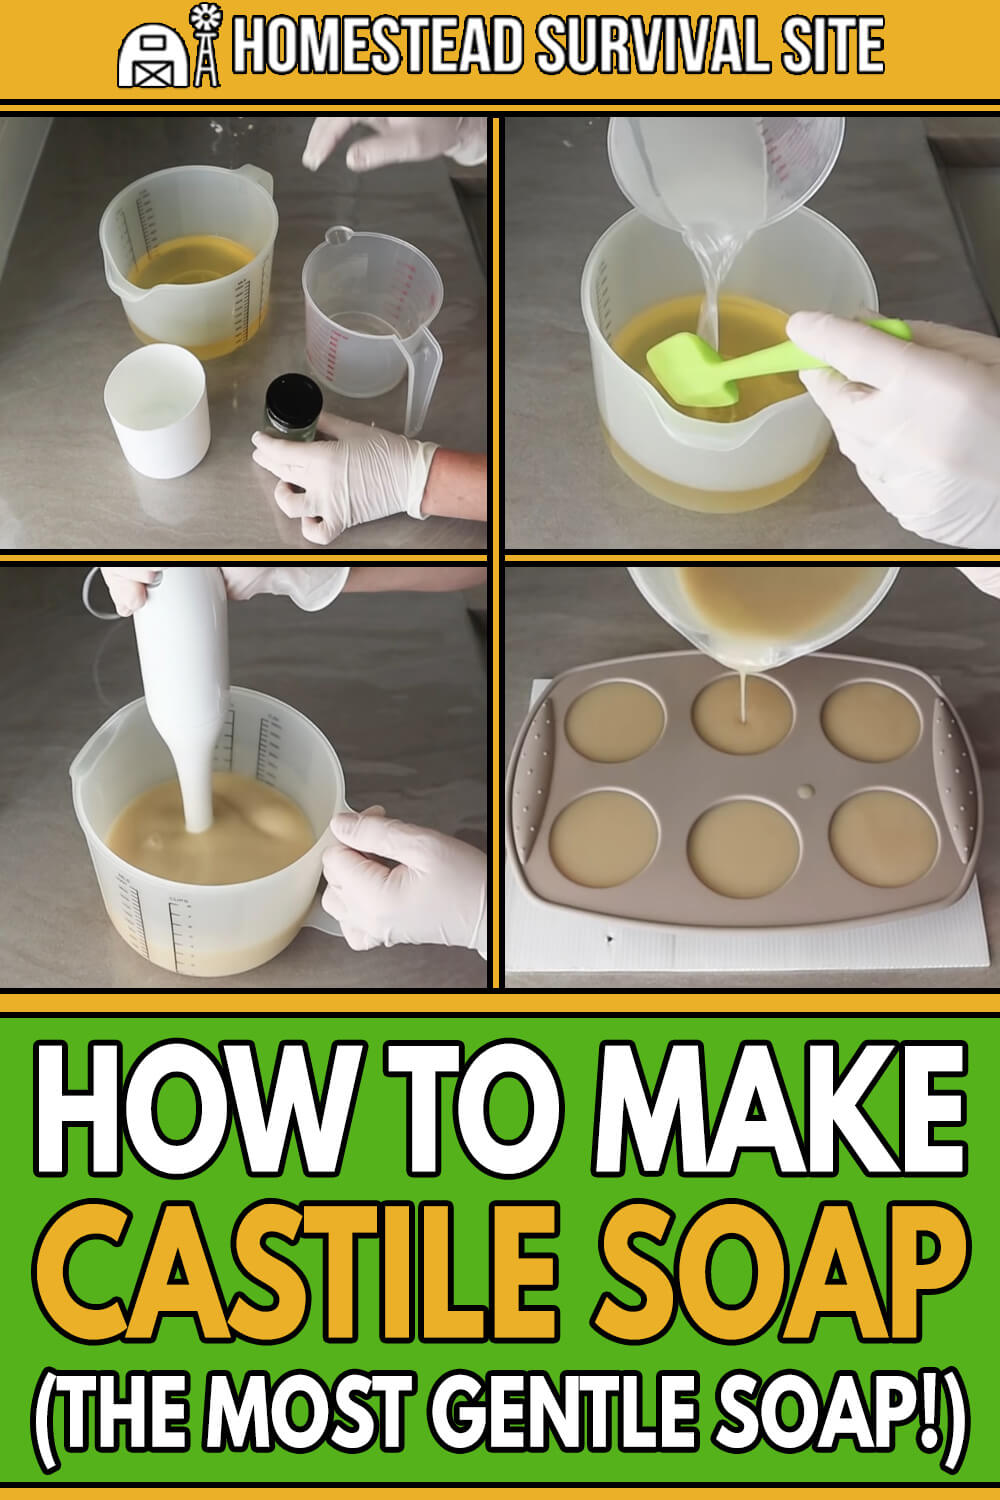 How to Make Castile Soap (The Most Gentle Soap!)